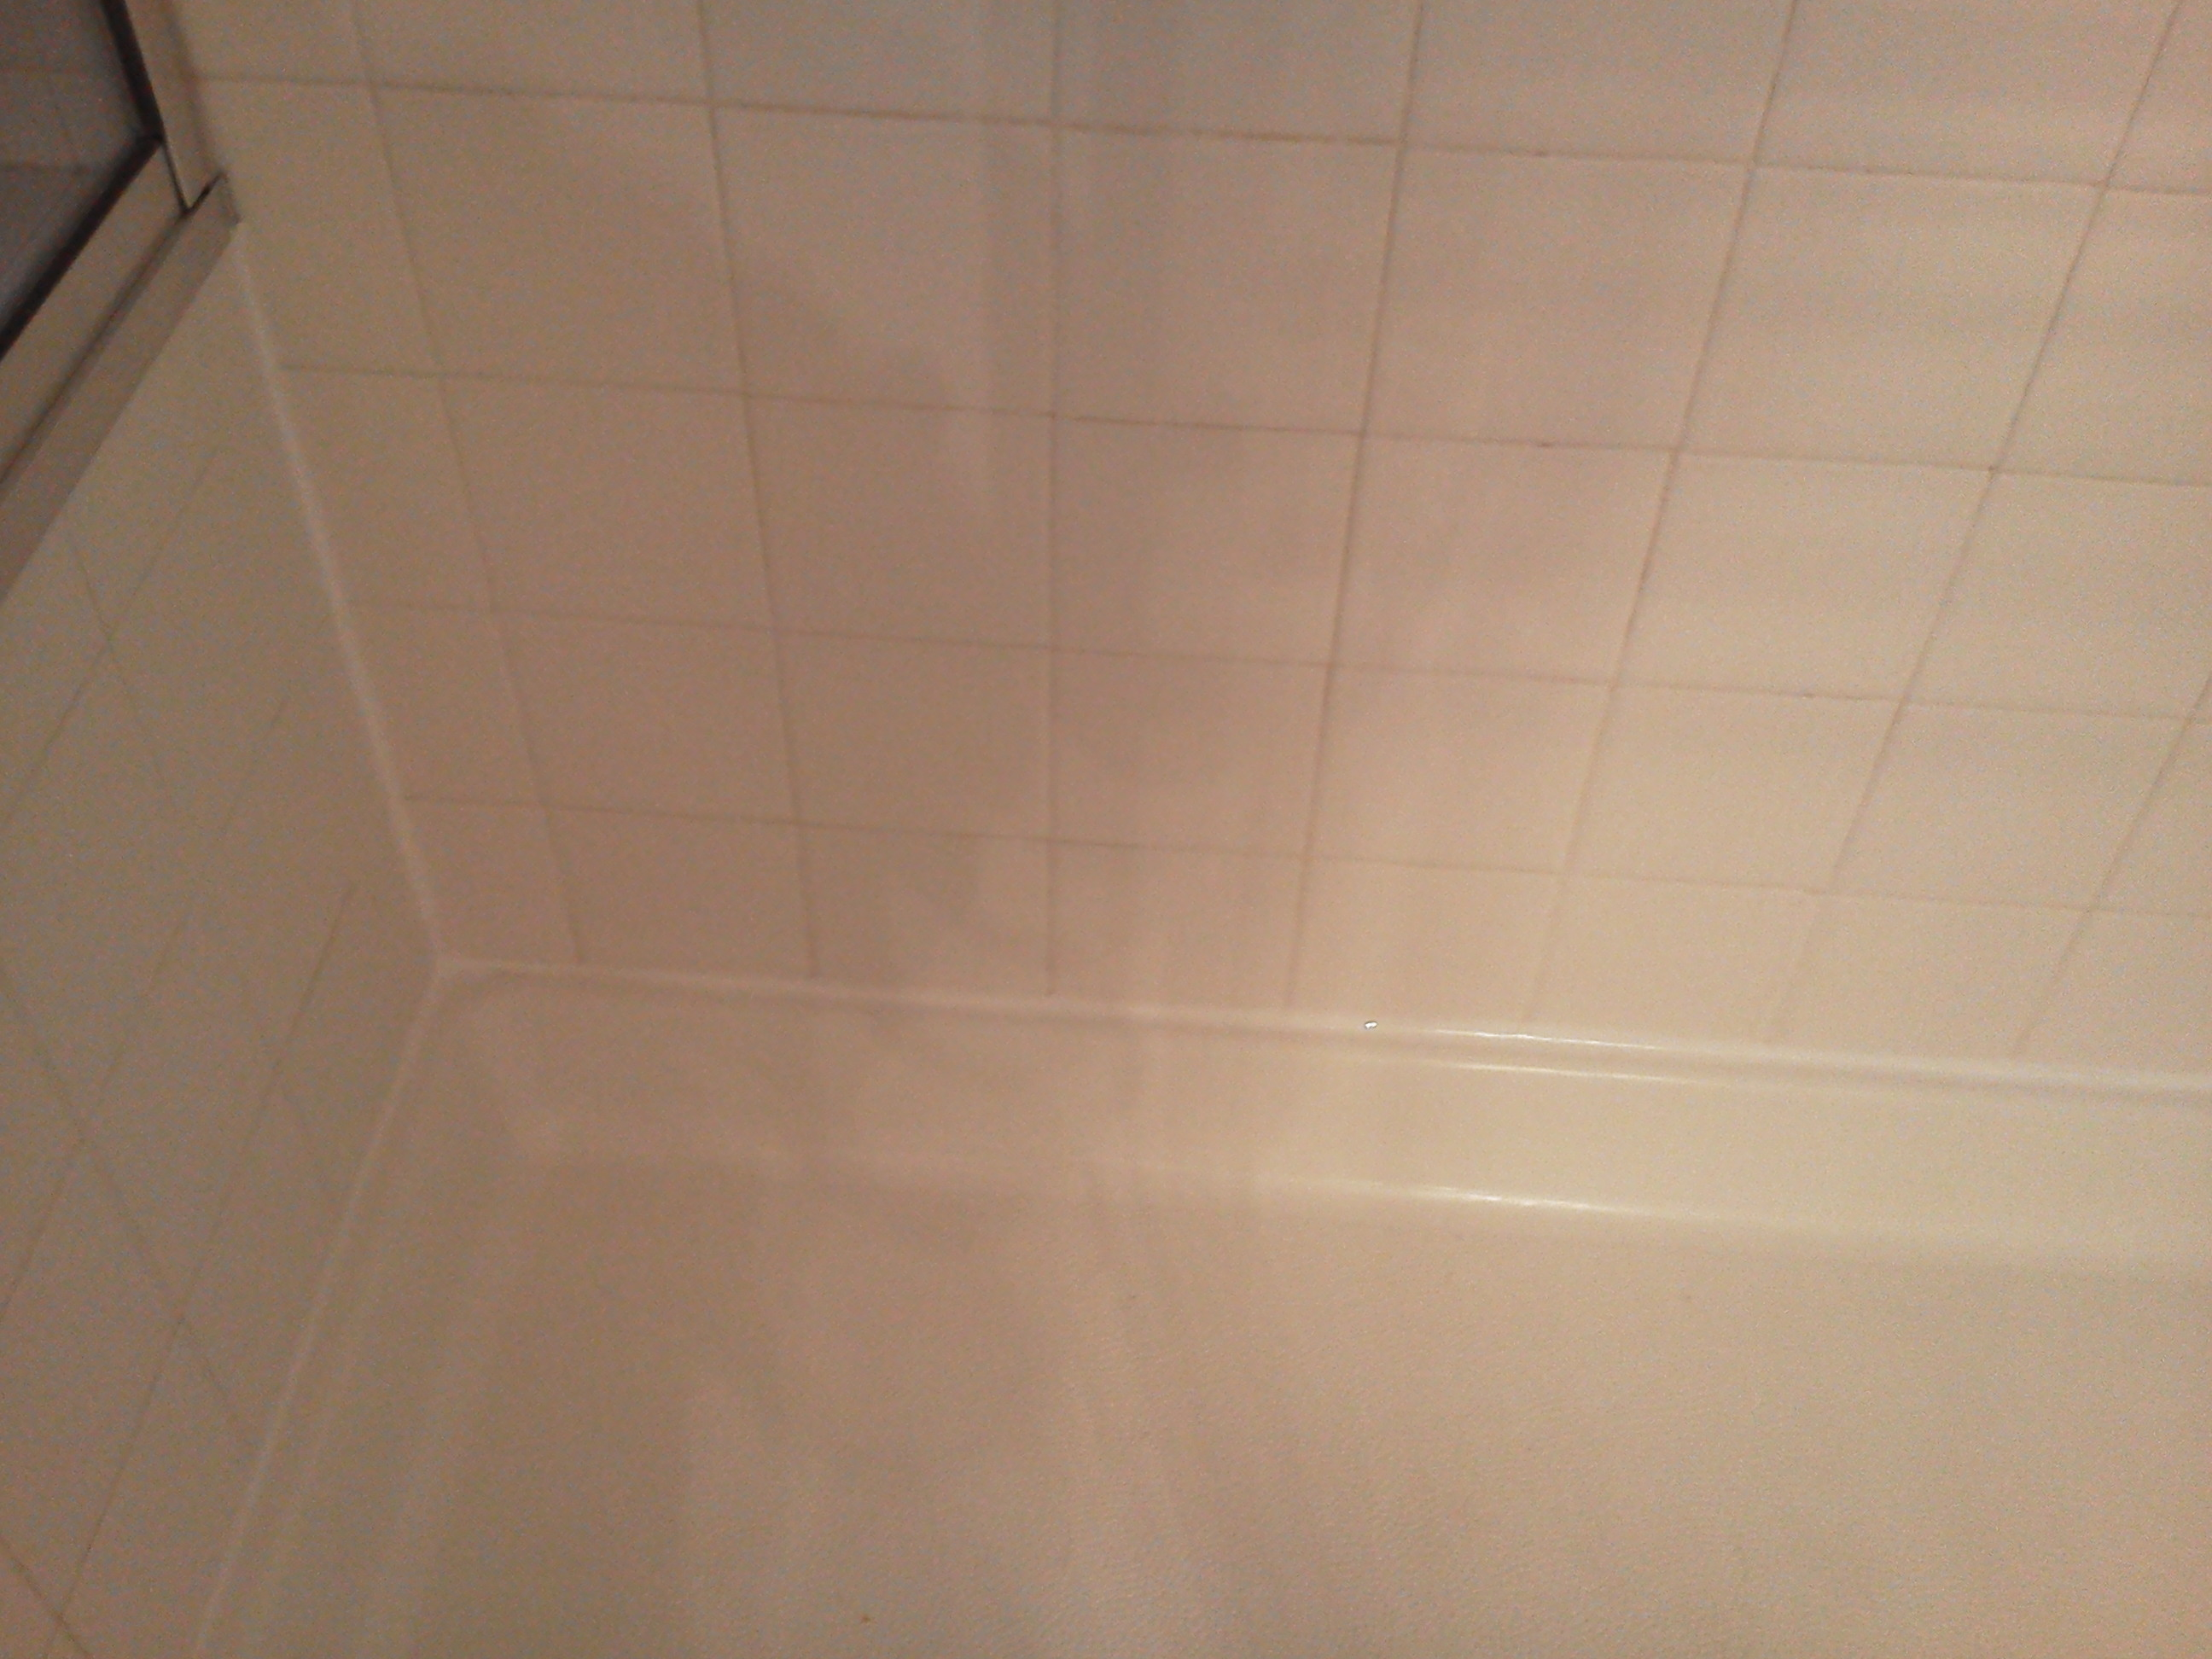 A minor shower repair could save thousands pristine tile carpet cleaning Caulking bathroom shower